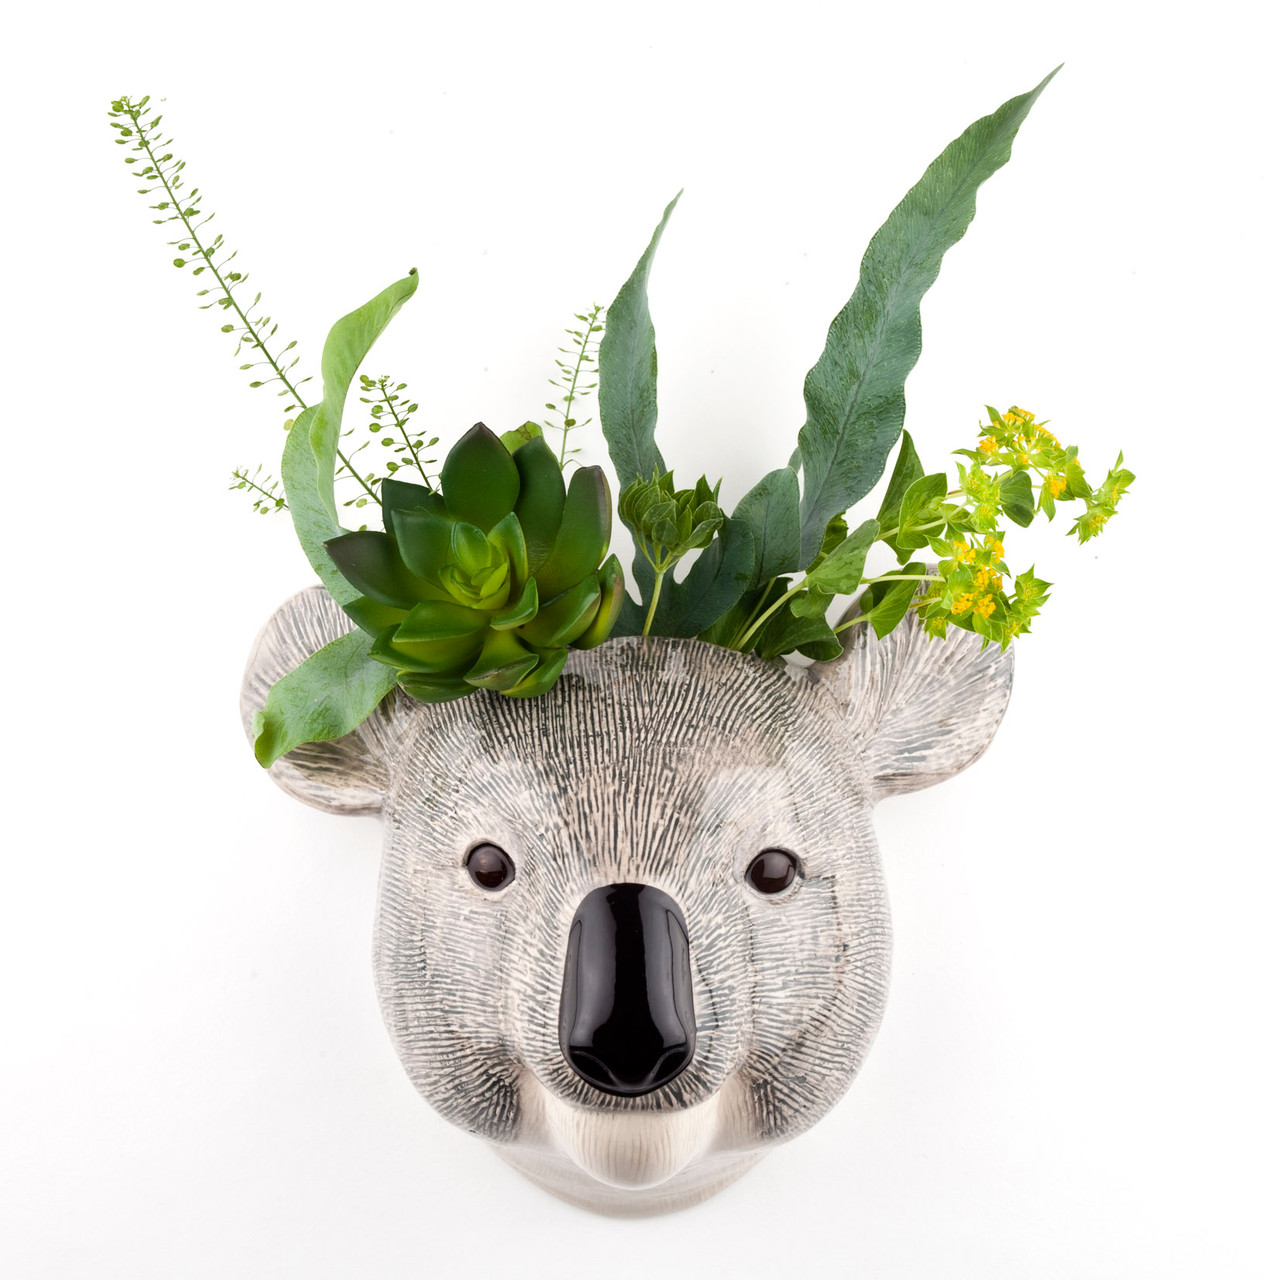 Koala Small Wall Vase Quail Designs Ltd